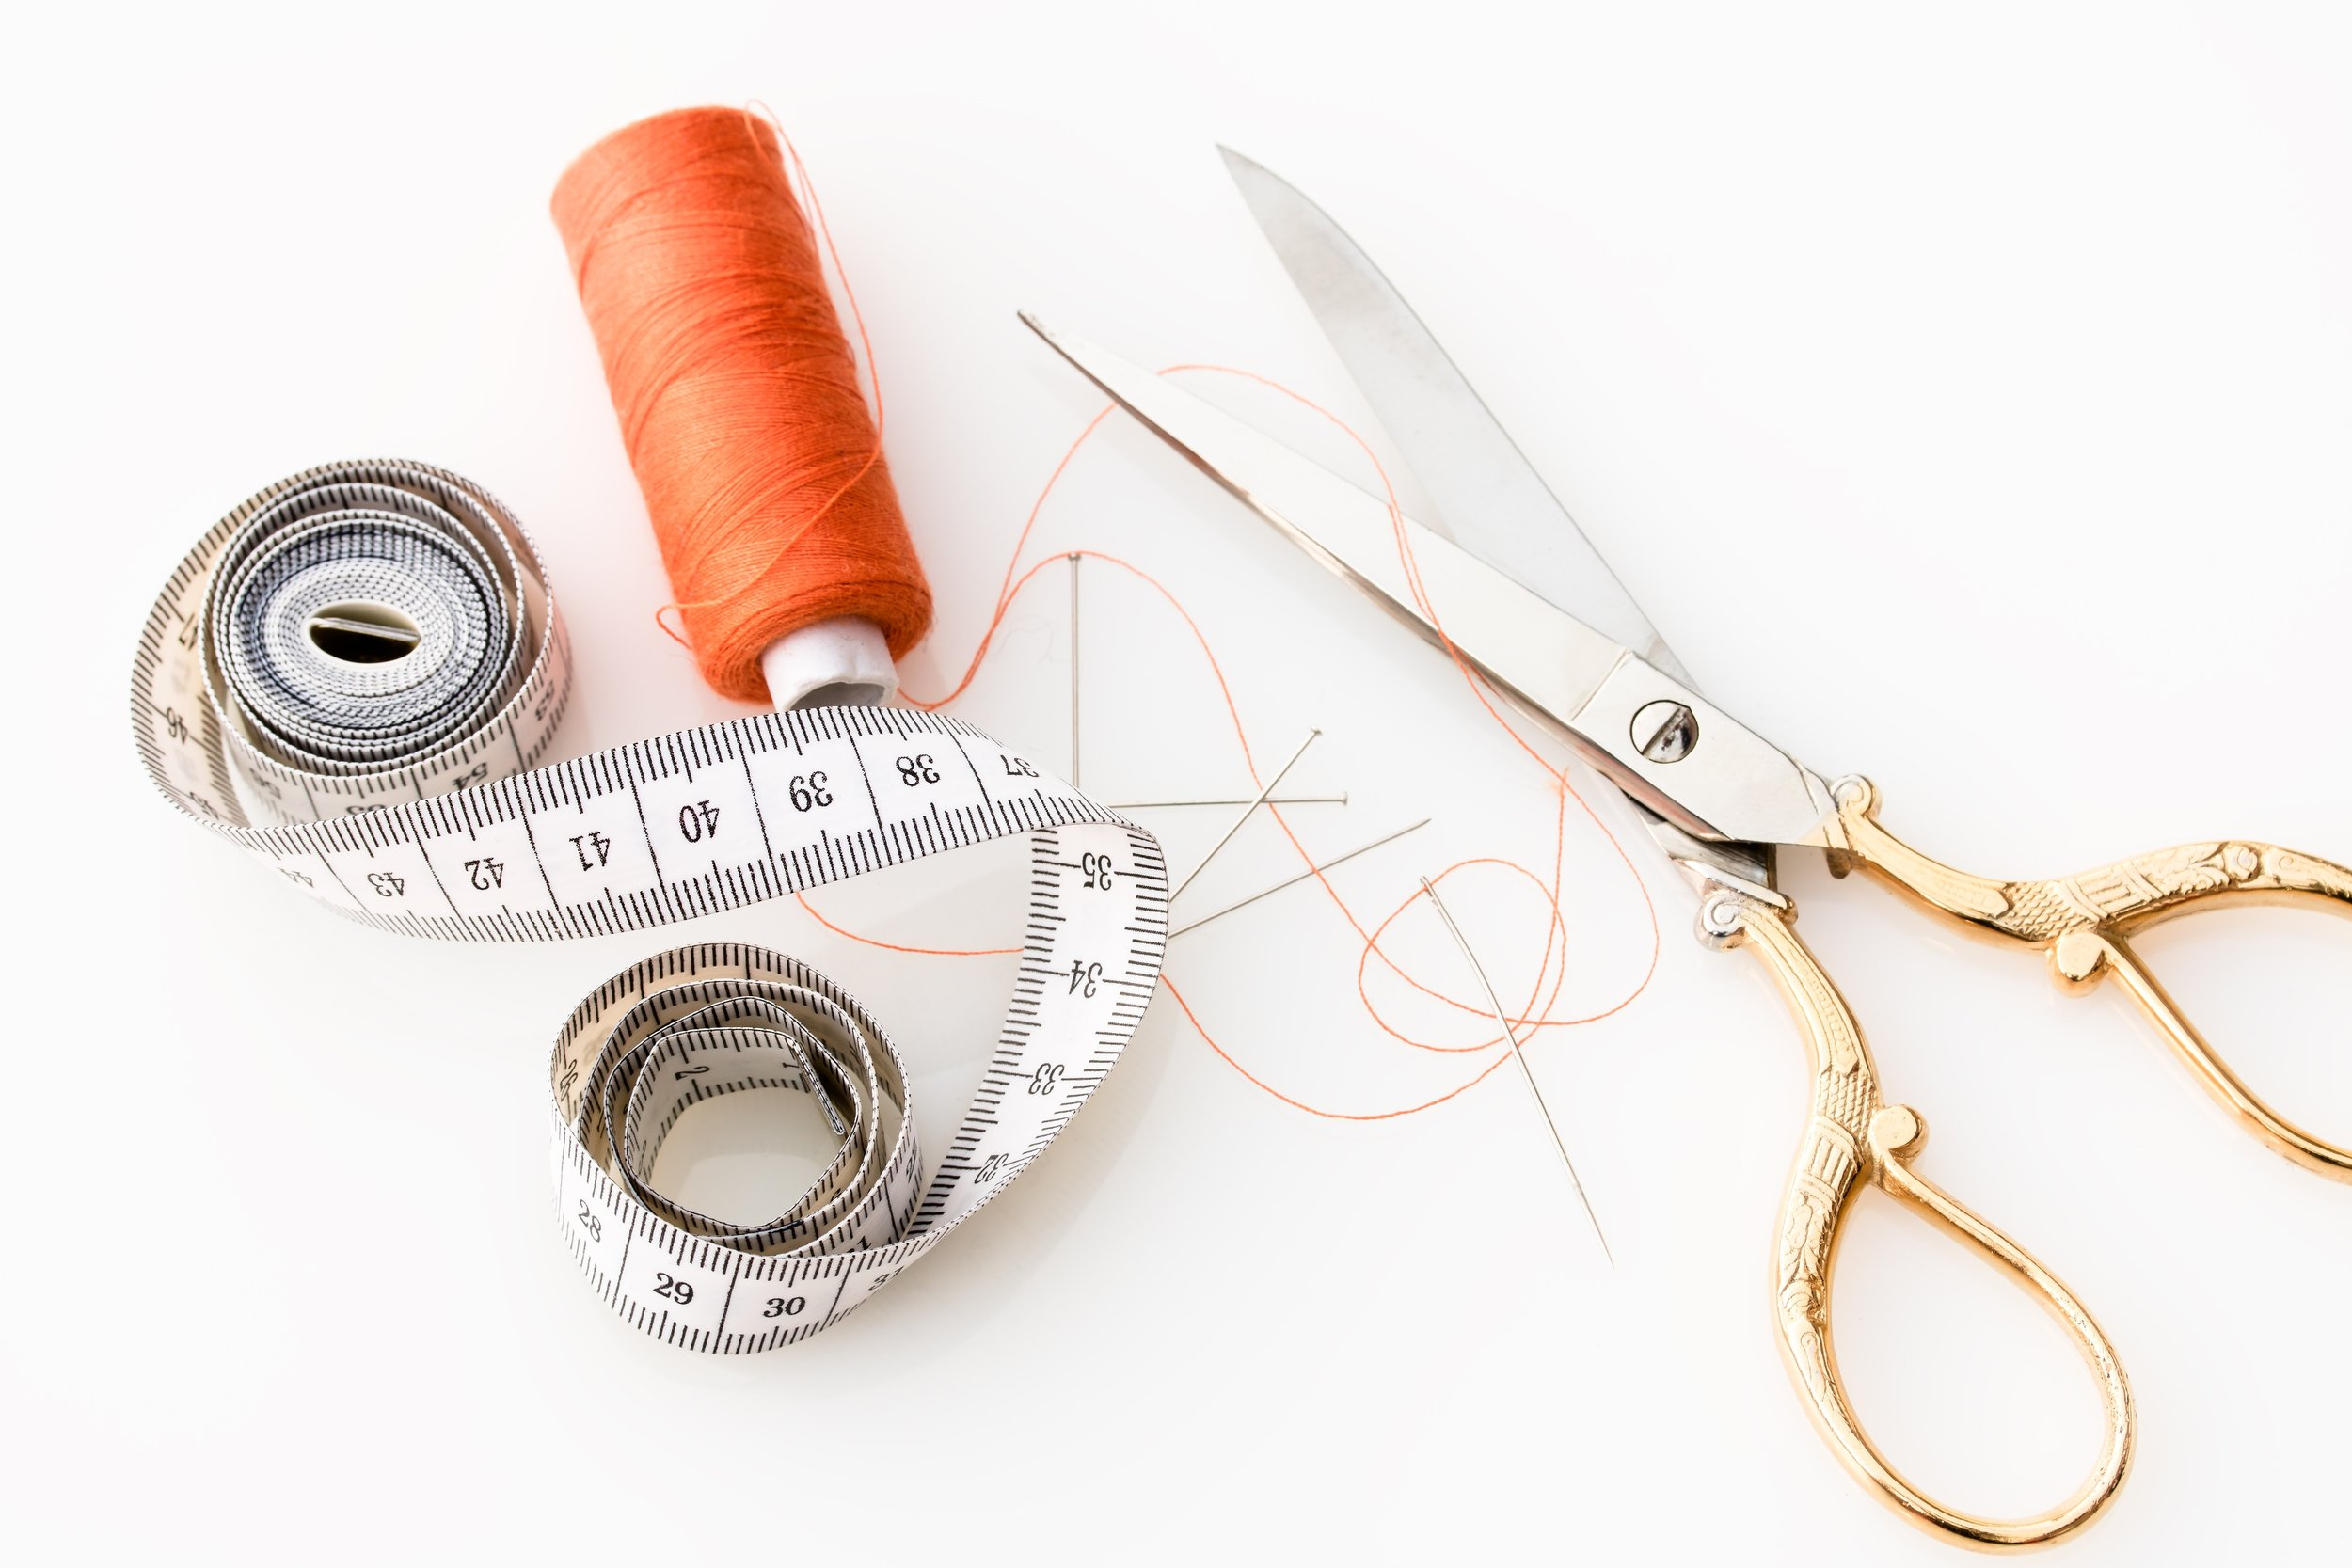 fabric-scissors-needle-needles-461035.jpg